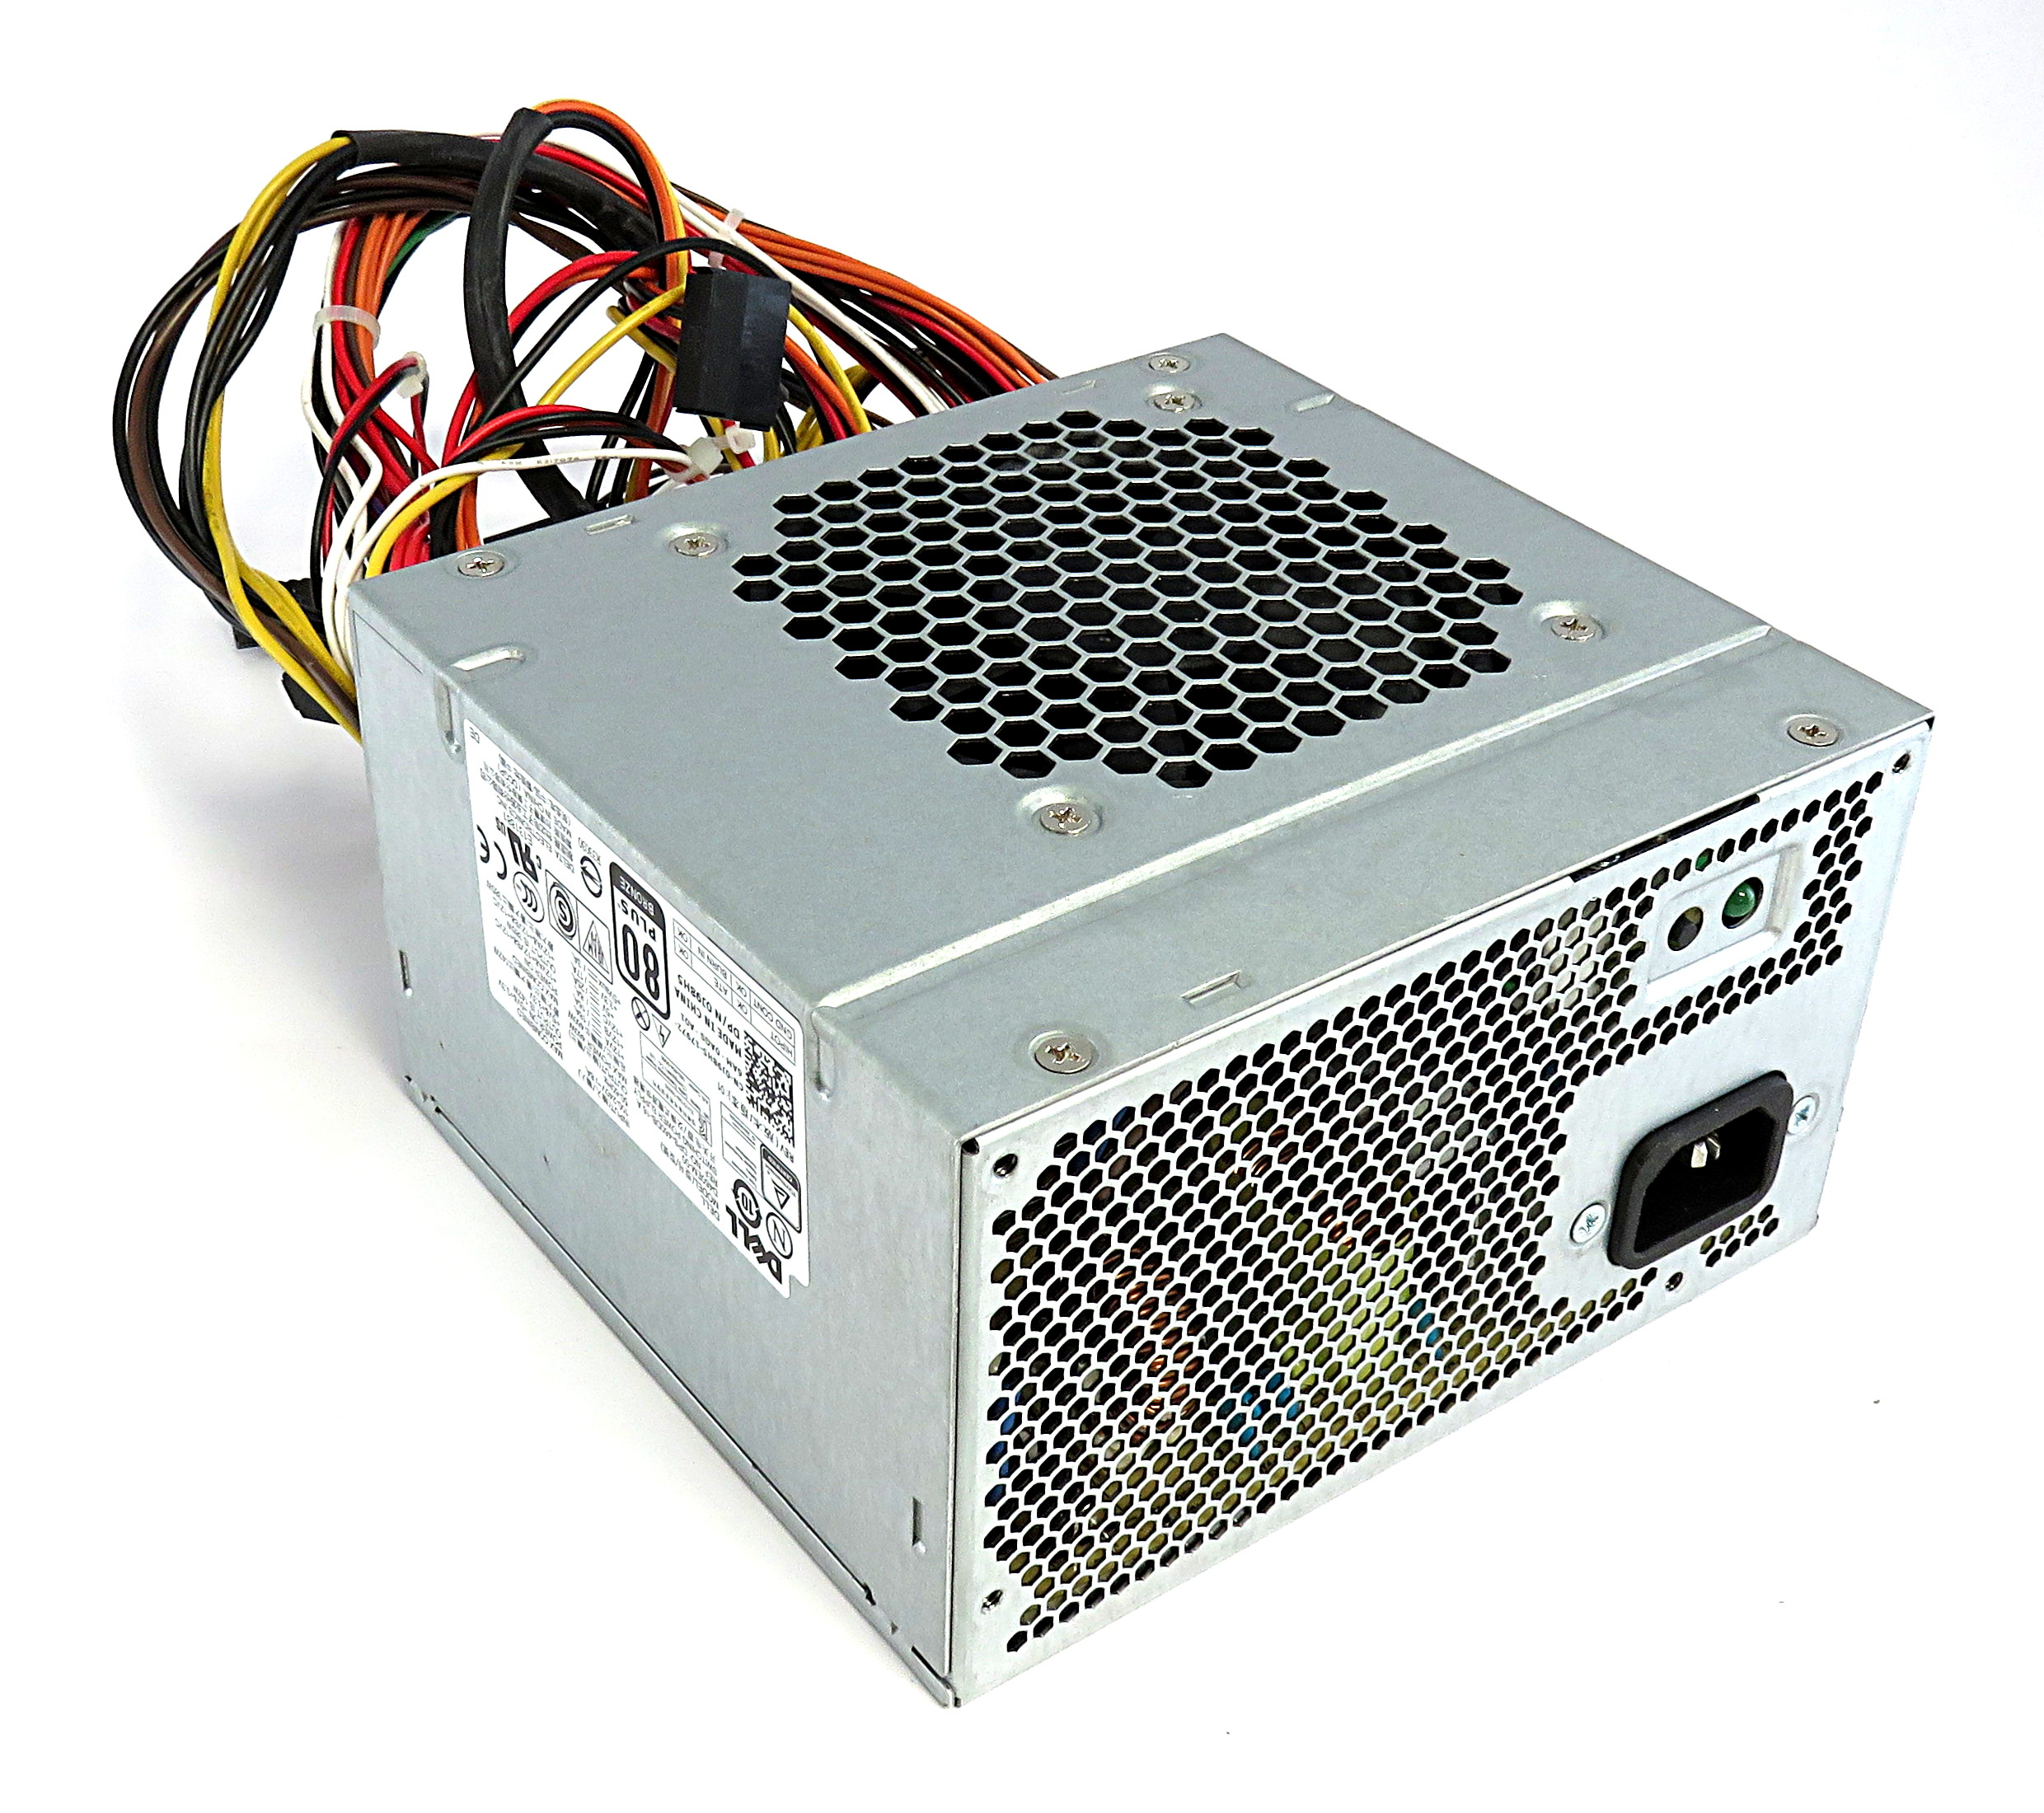 Dell J98H5 460W Semi-Passive PSU f/ XPS 8920 Desktop PC - Delta DPS-460DB-16A